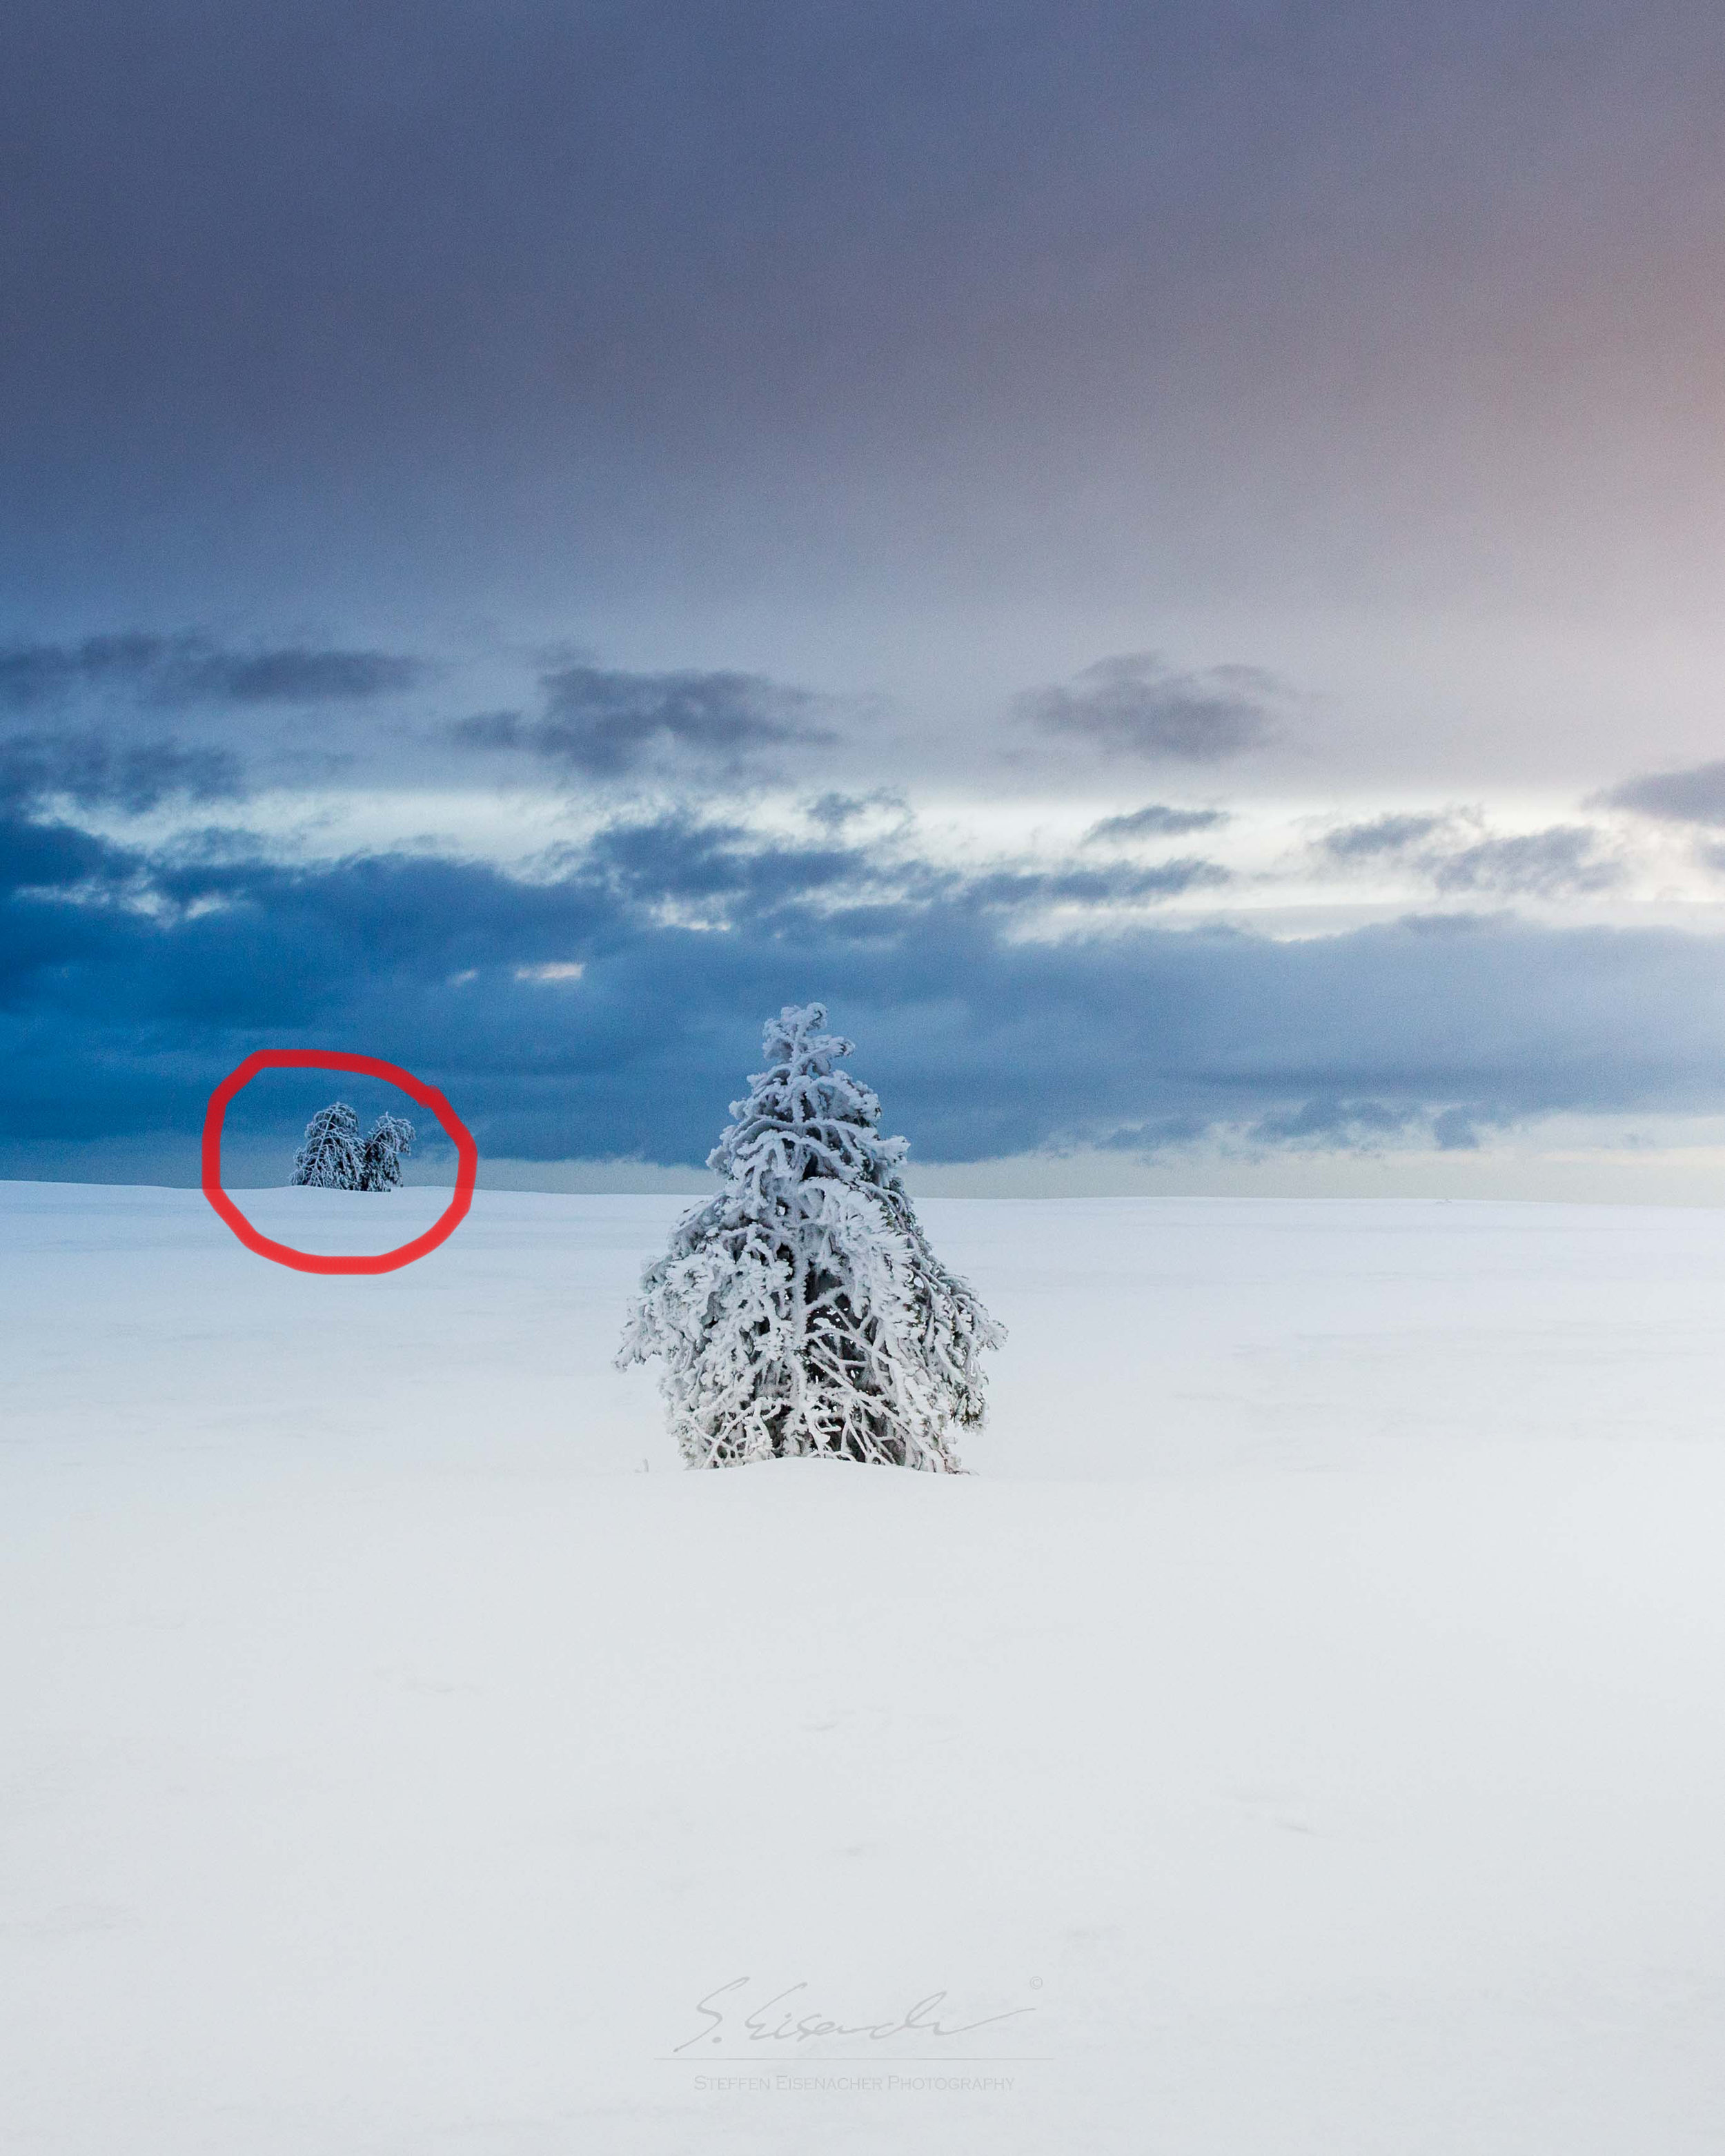 I found the tree in the background to be distracting my minimalistic composition....